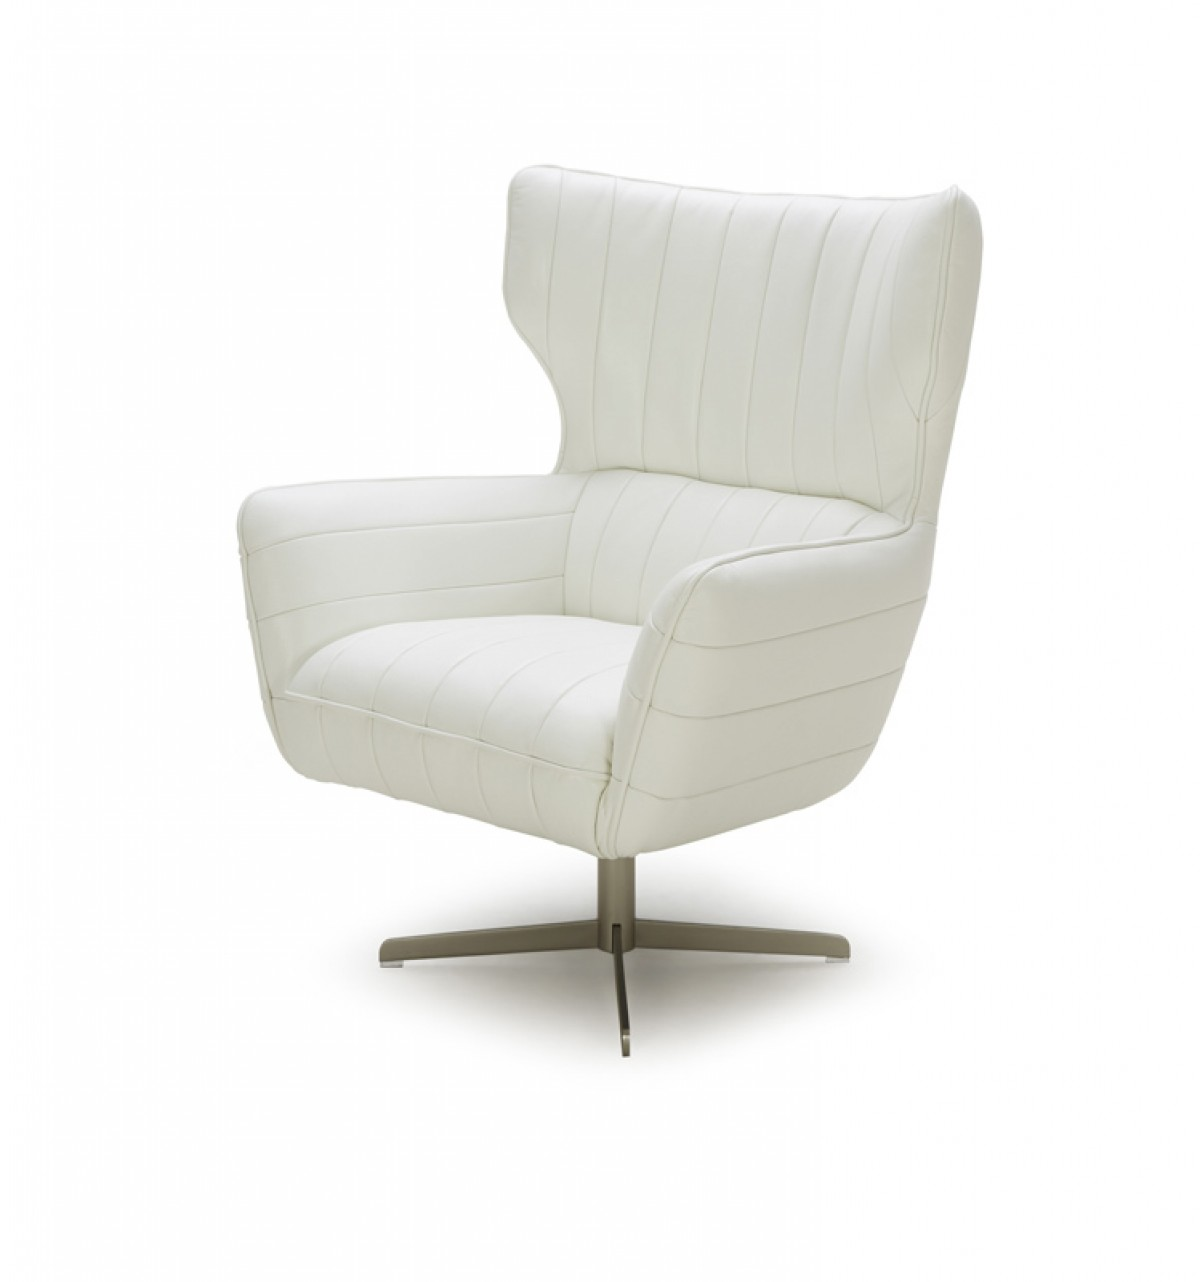 White Leather Swivel Chair White Leather Swivel Accent Chair Charlotte North Carolina